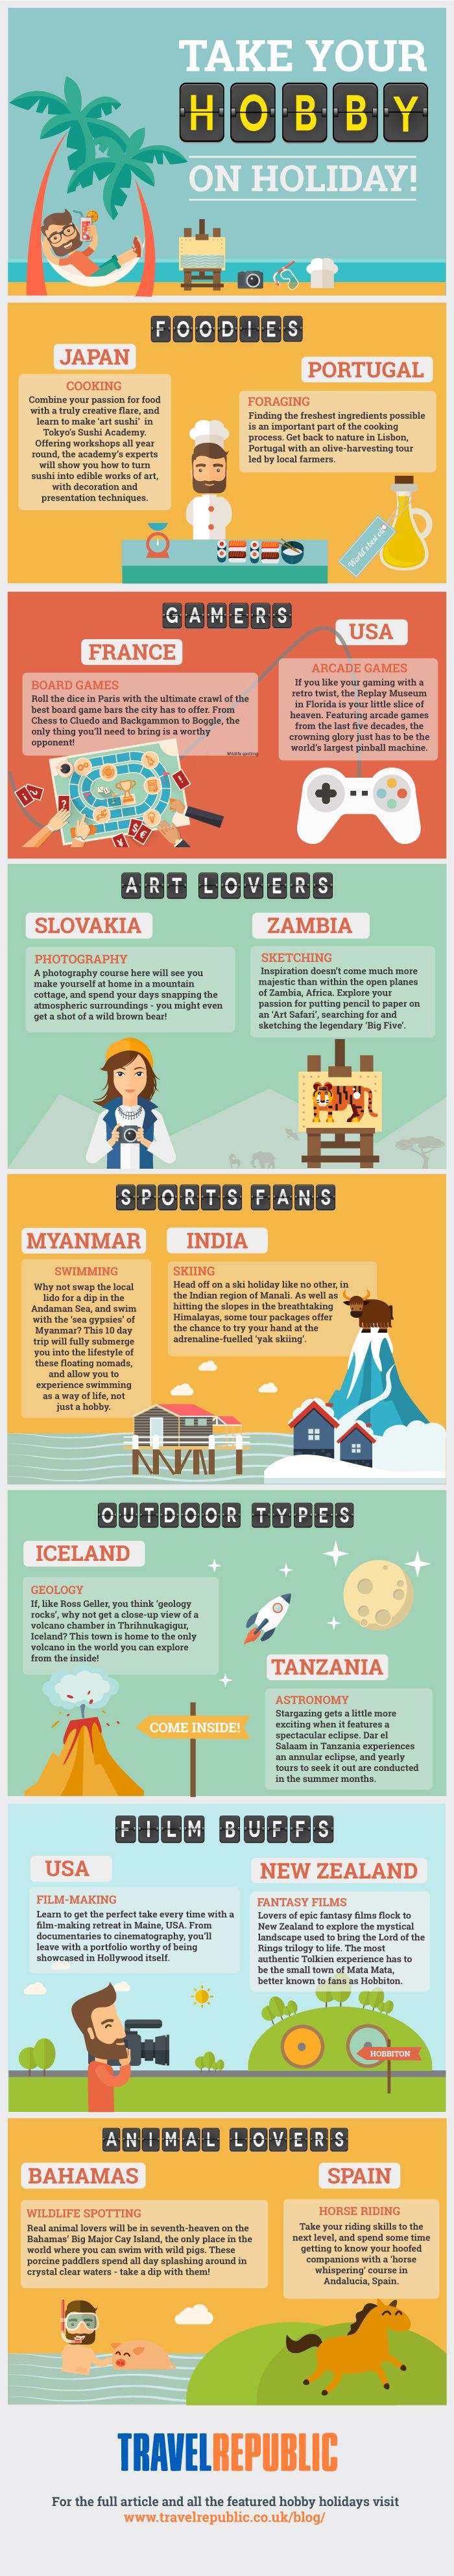 Take Your Hobby on Holiday #infographic